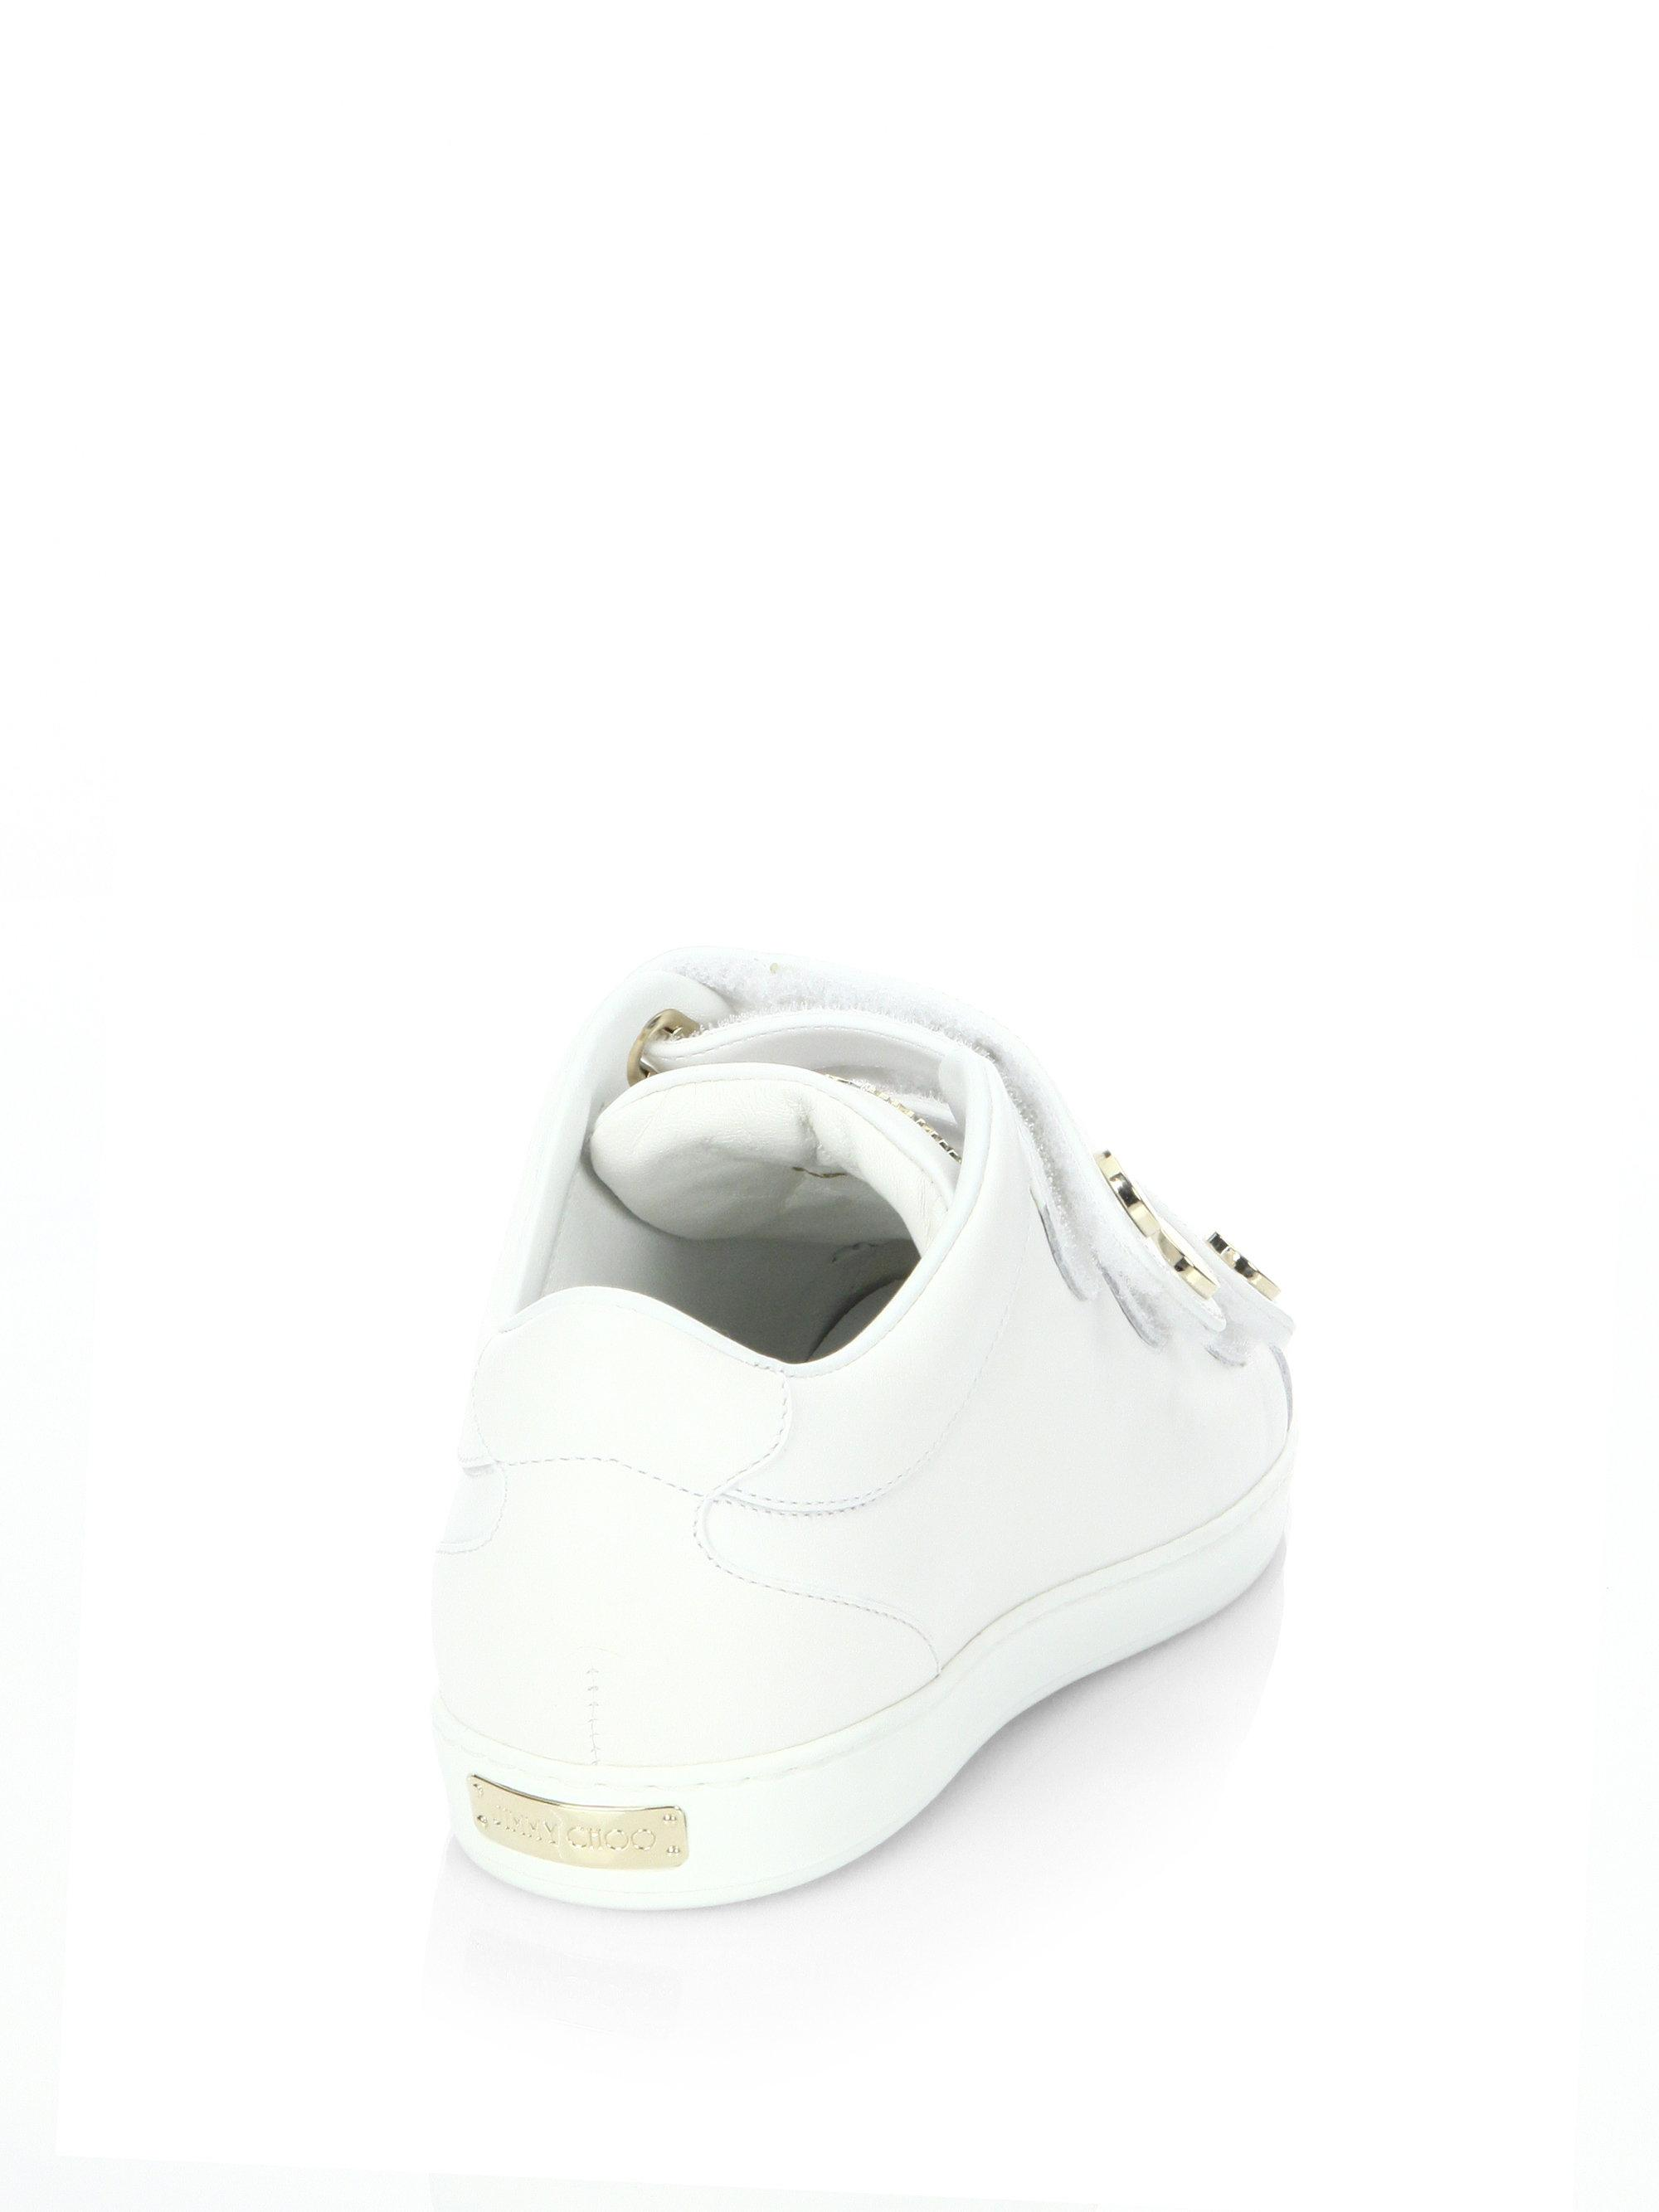 Jimmy Choo - White Ny Leather Grip-tape Sneakers - Lyst. View fullscreen